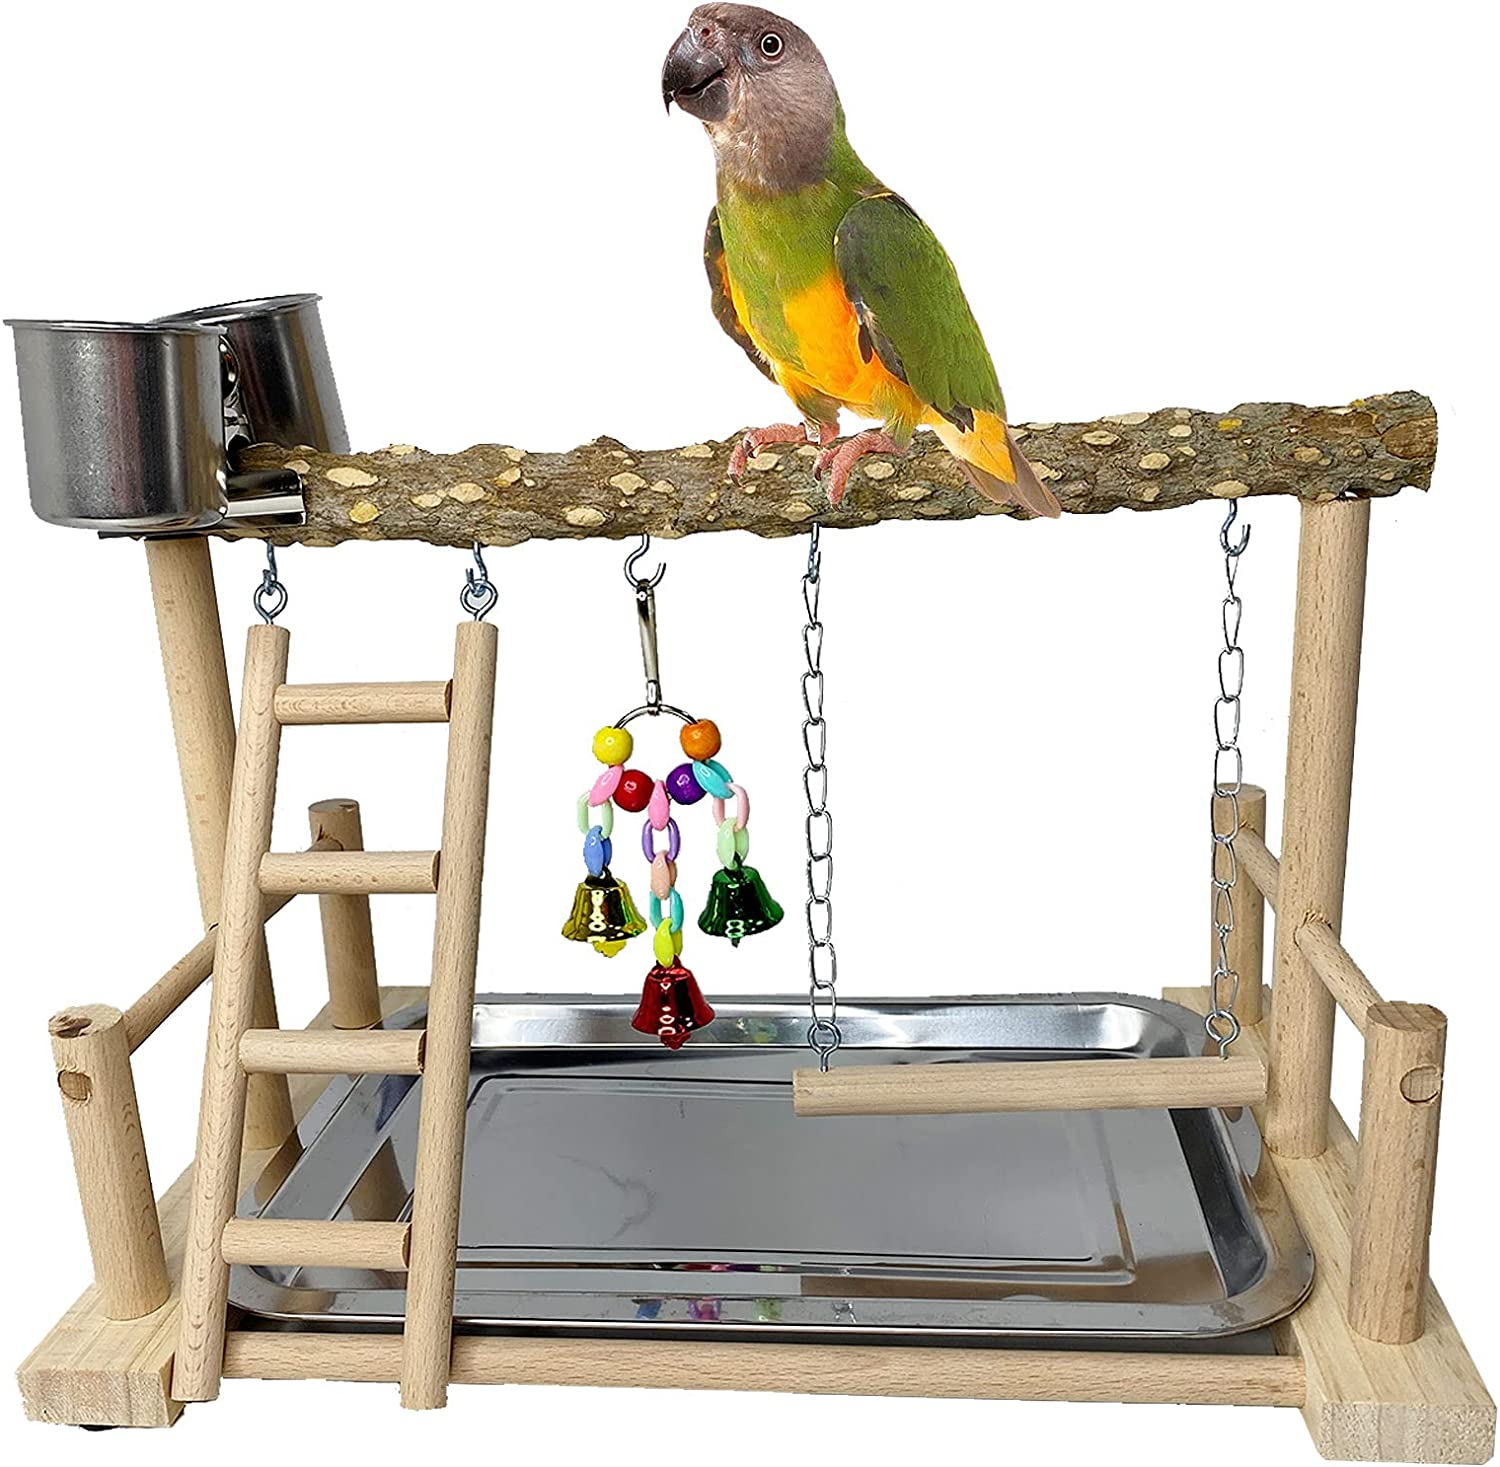 kathson Parrots Low Max 70% OFF price Playground Bird Perch with Wood Stand Playstand